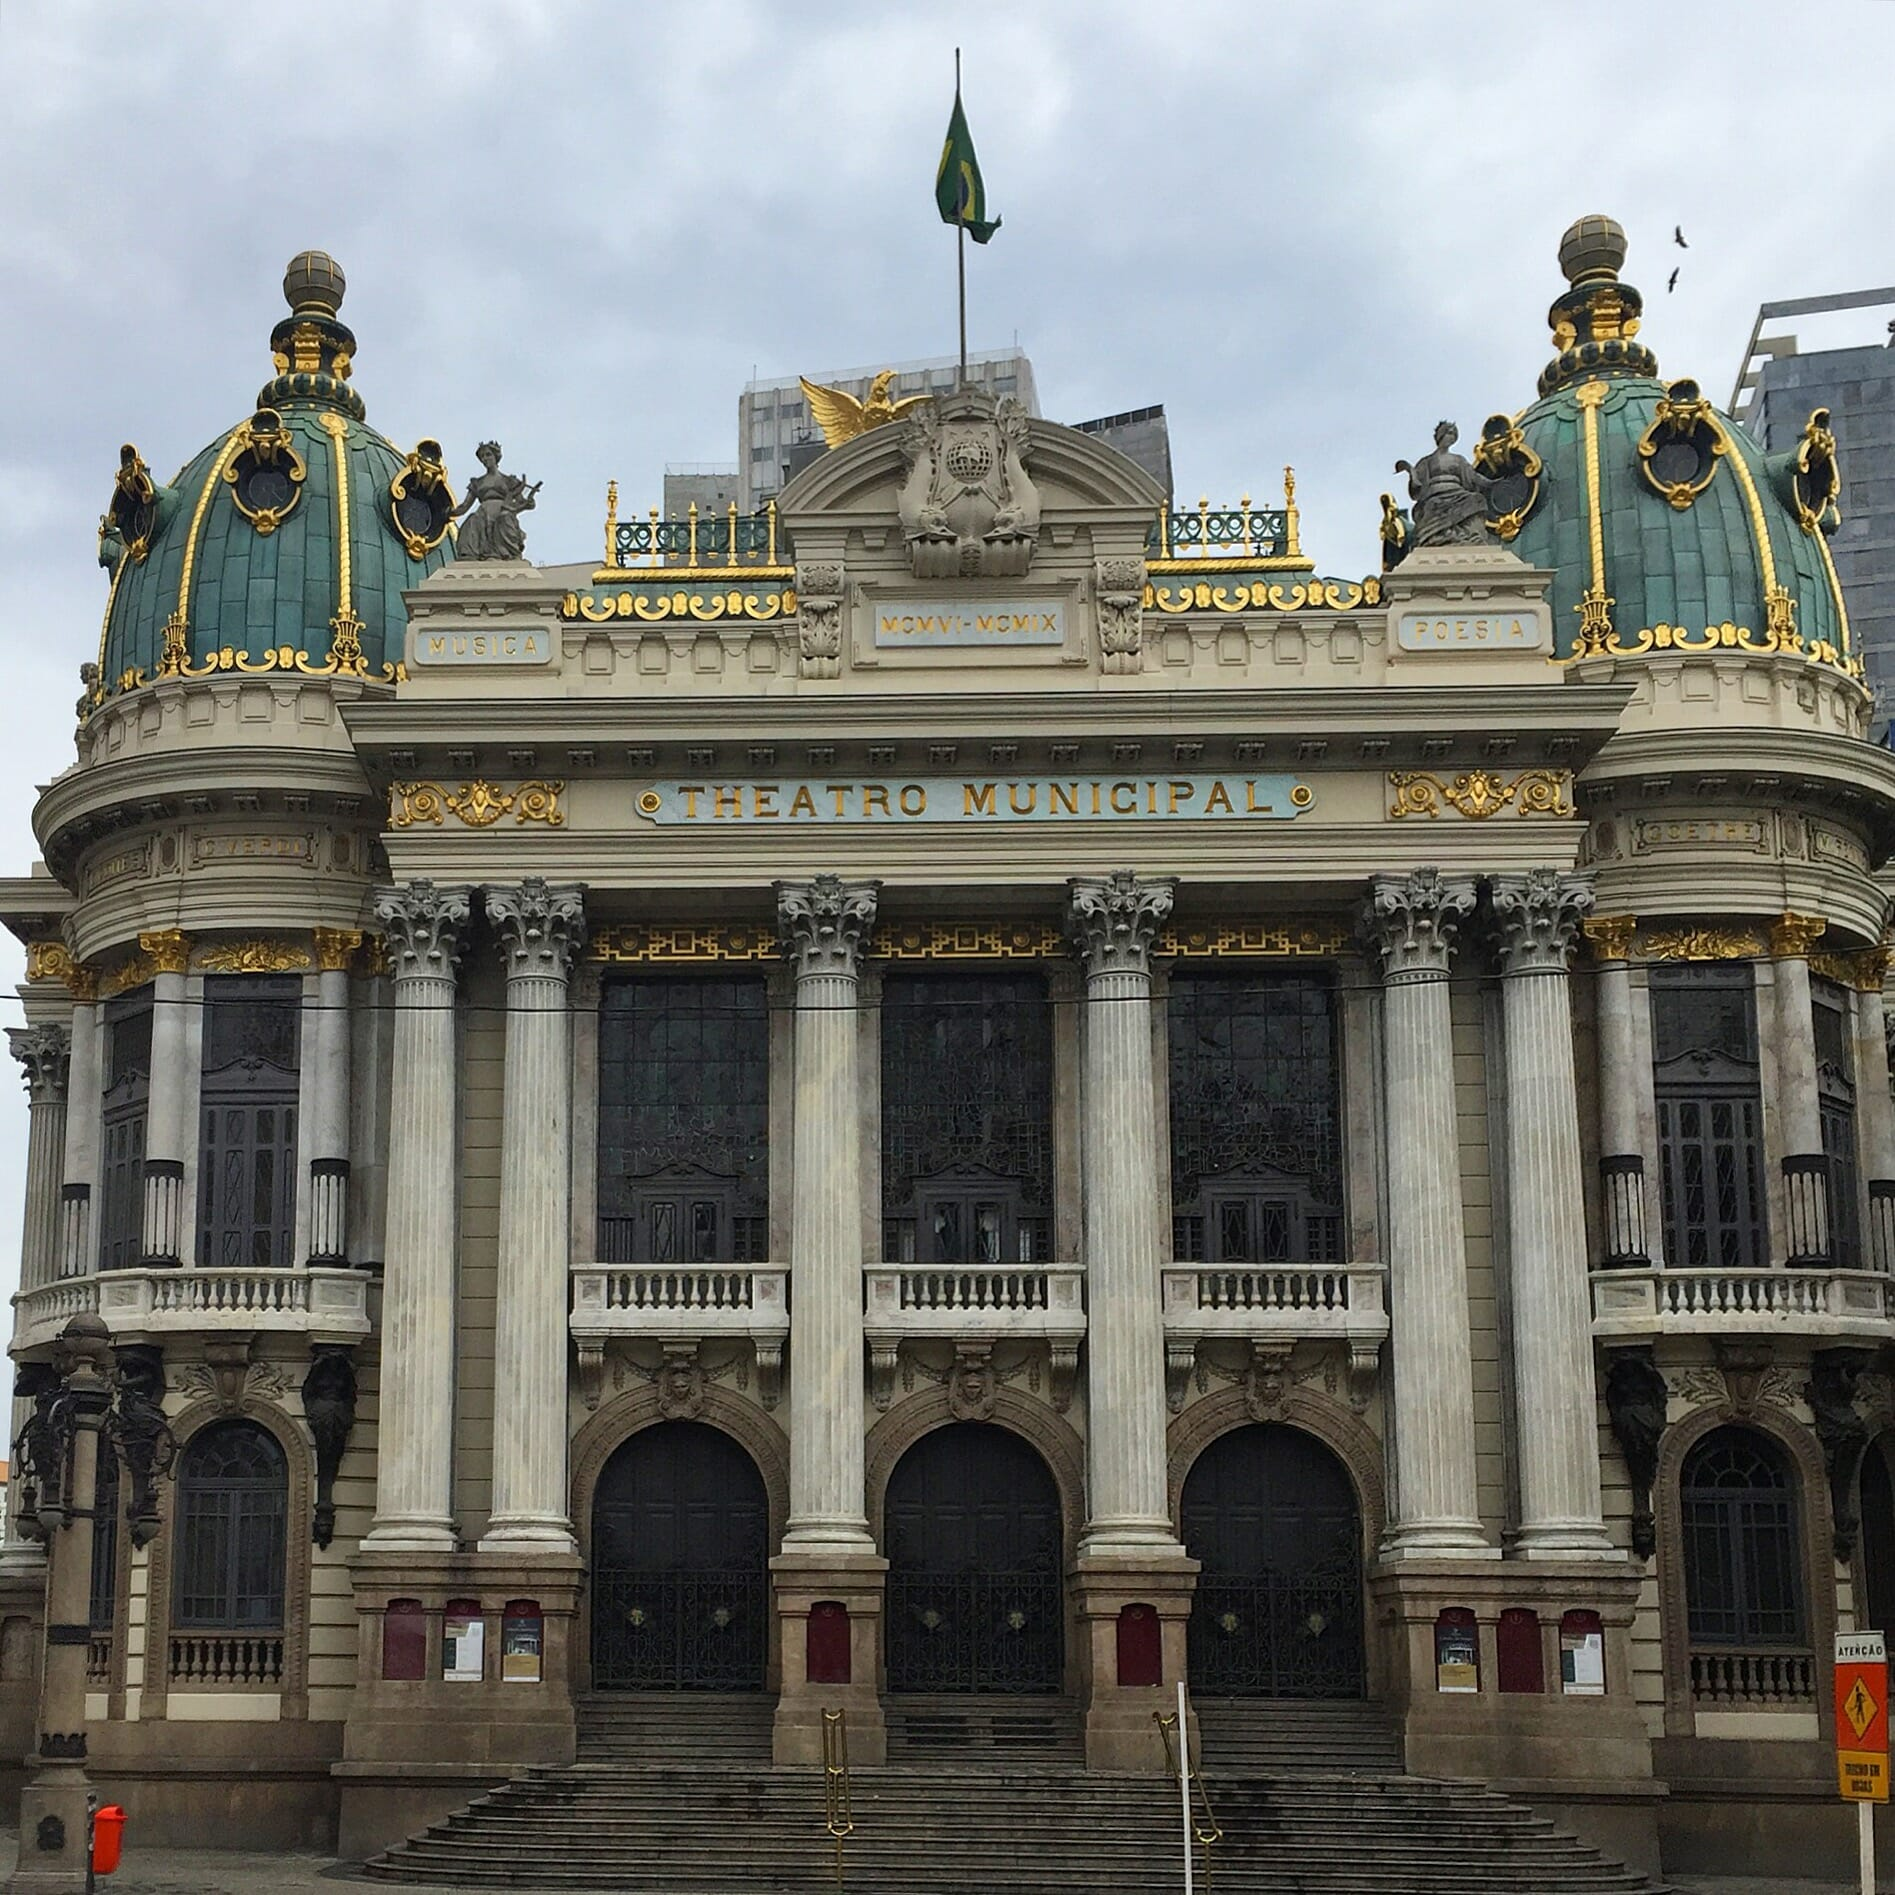 O famoso Teatro Municipal do Rio.